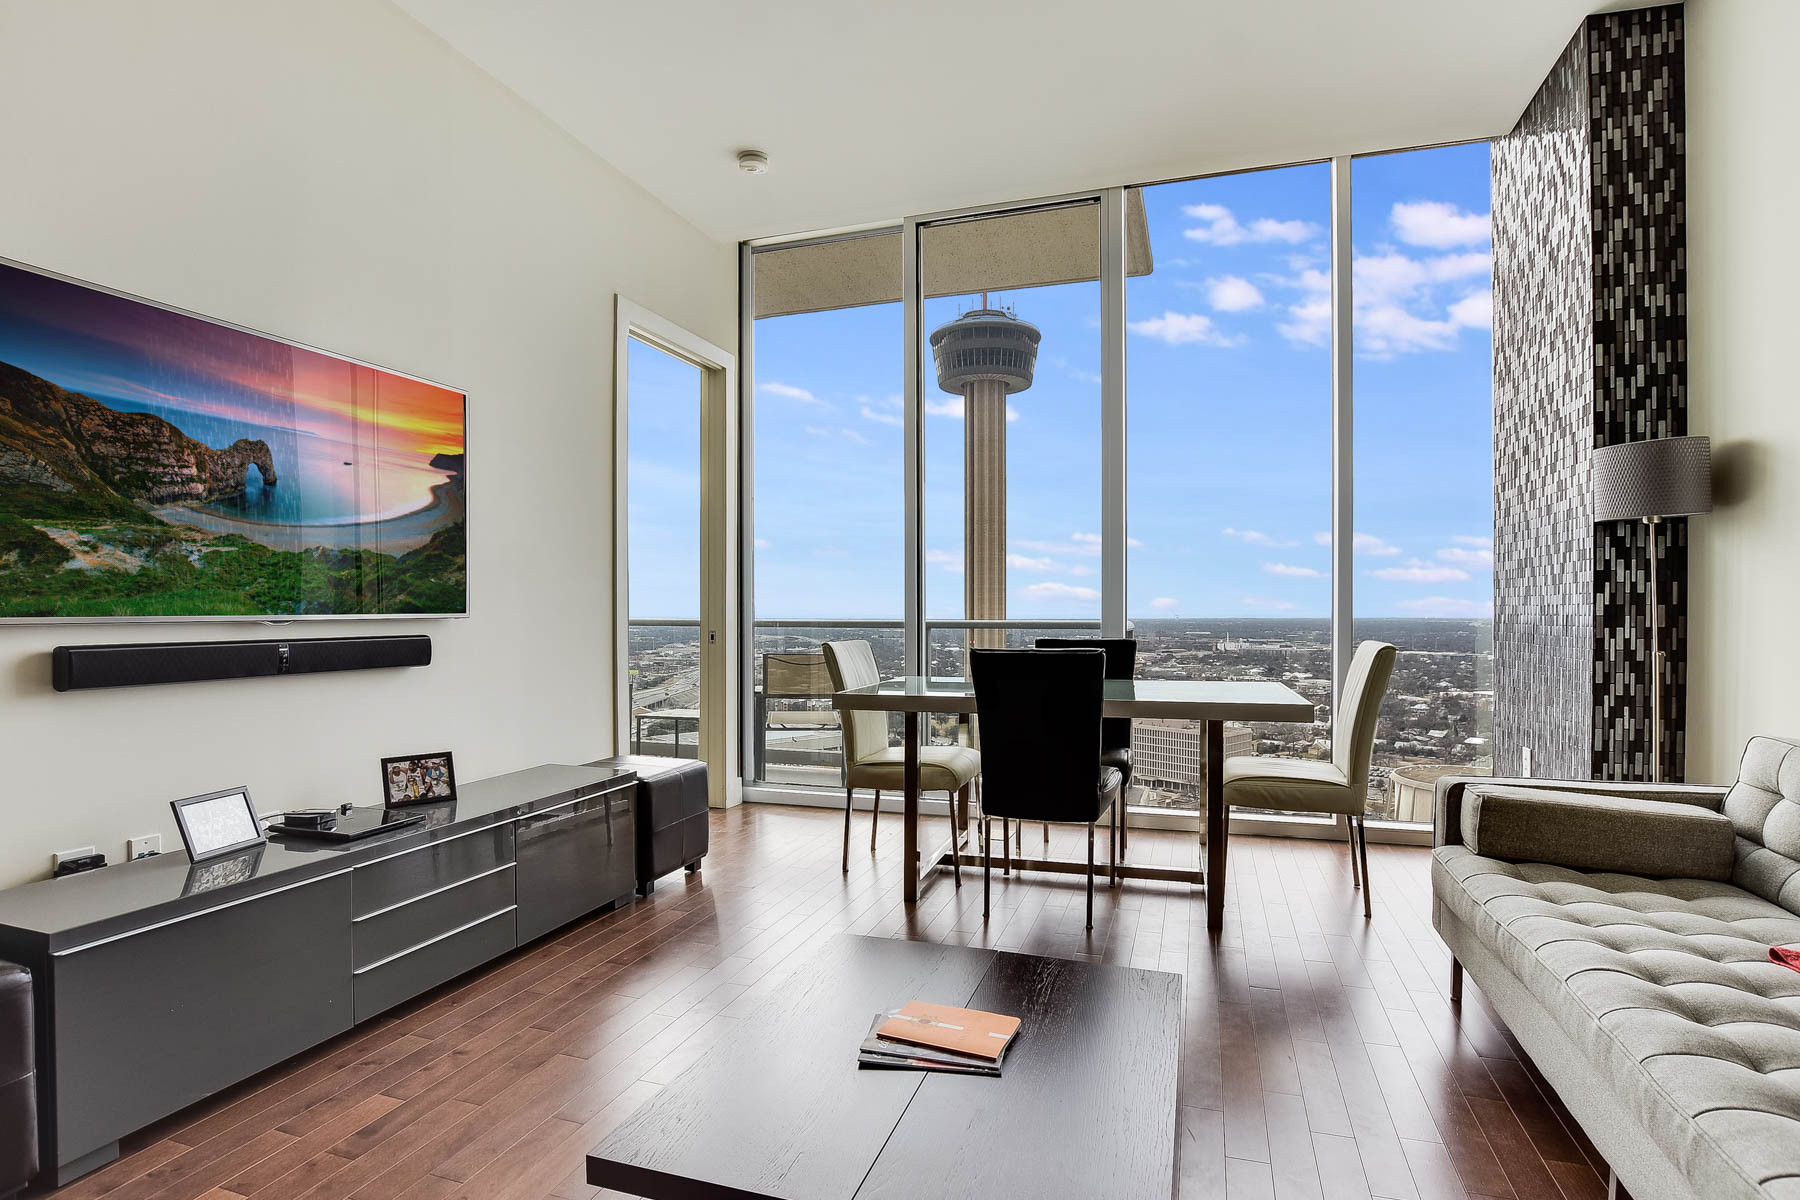 Condominium for Sale at Live Above The City At Alteza 610 East Market Street #2717 San Antonio, Texas 78205 United States